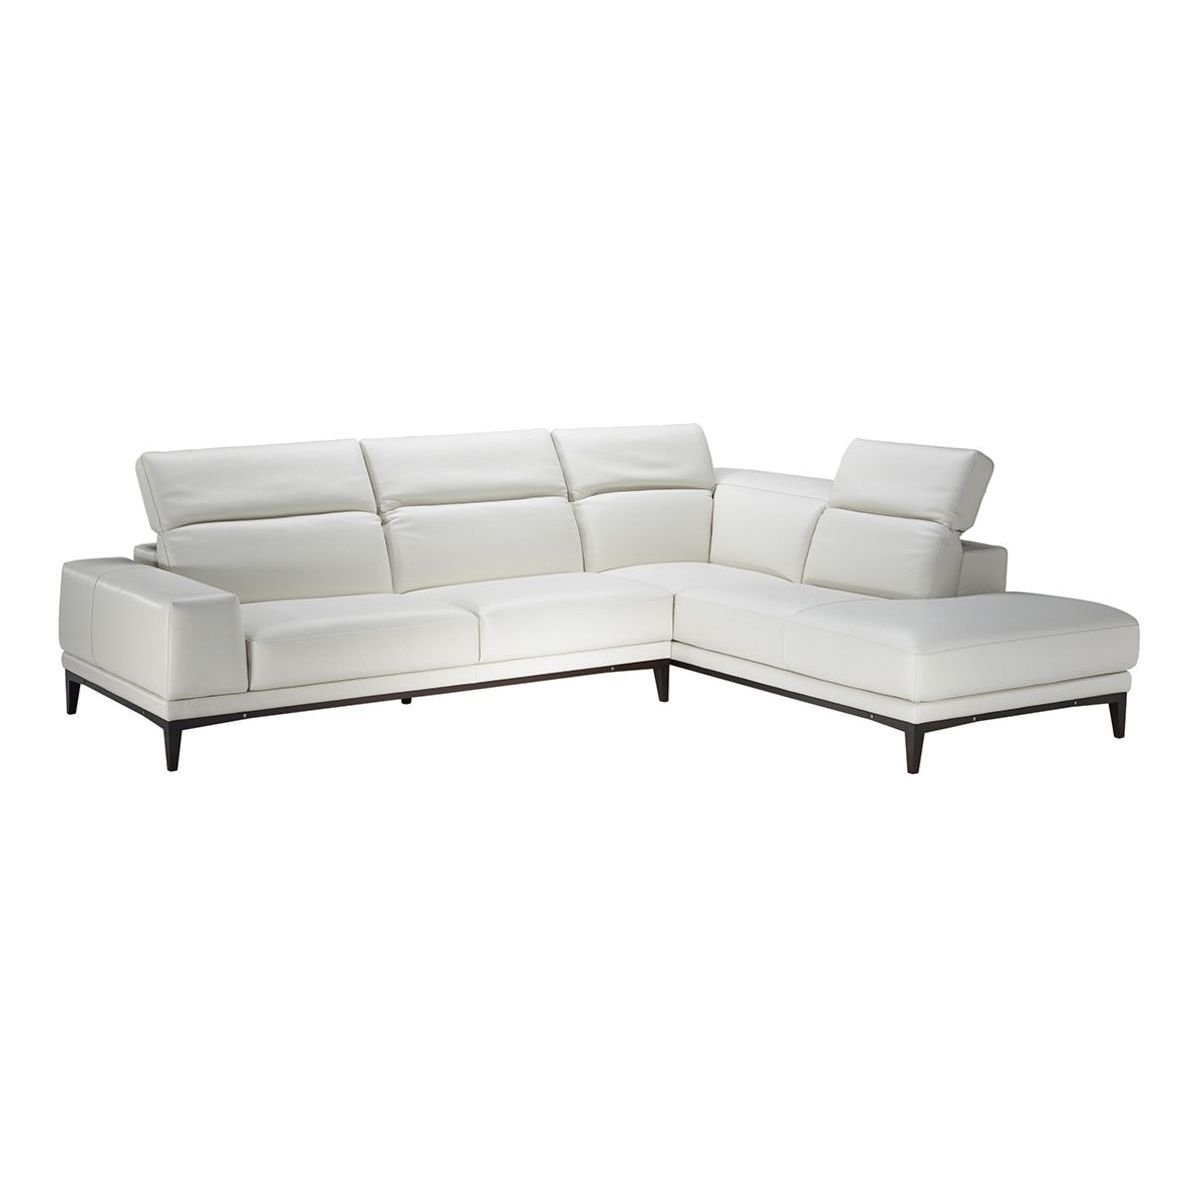 Sof s de piel el corte ingl s for Sofa con chaise longue